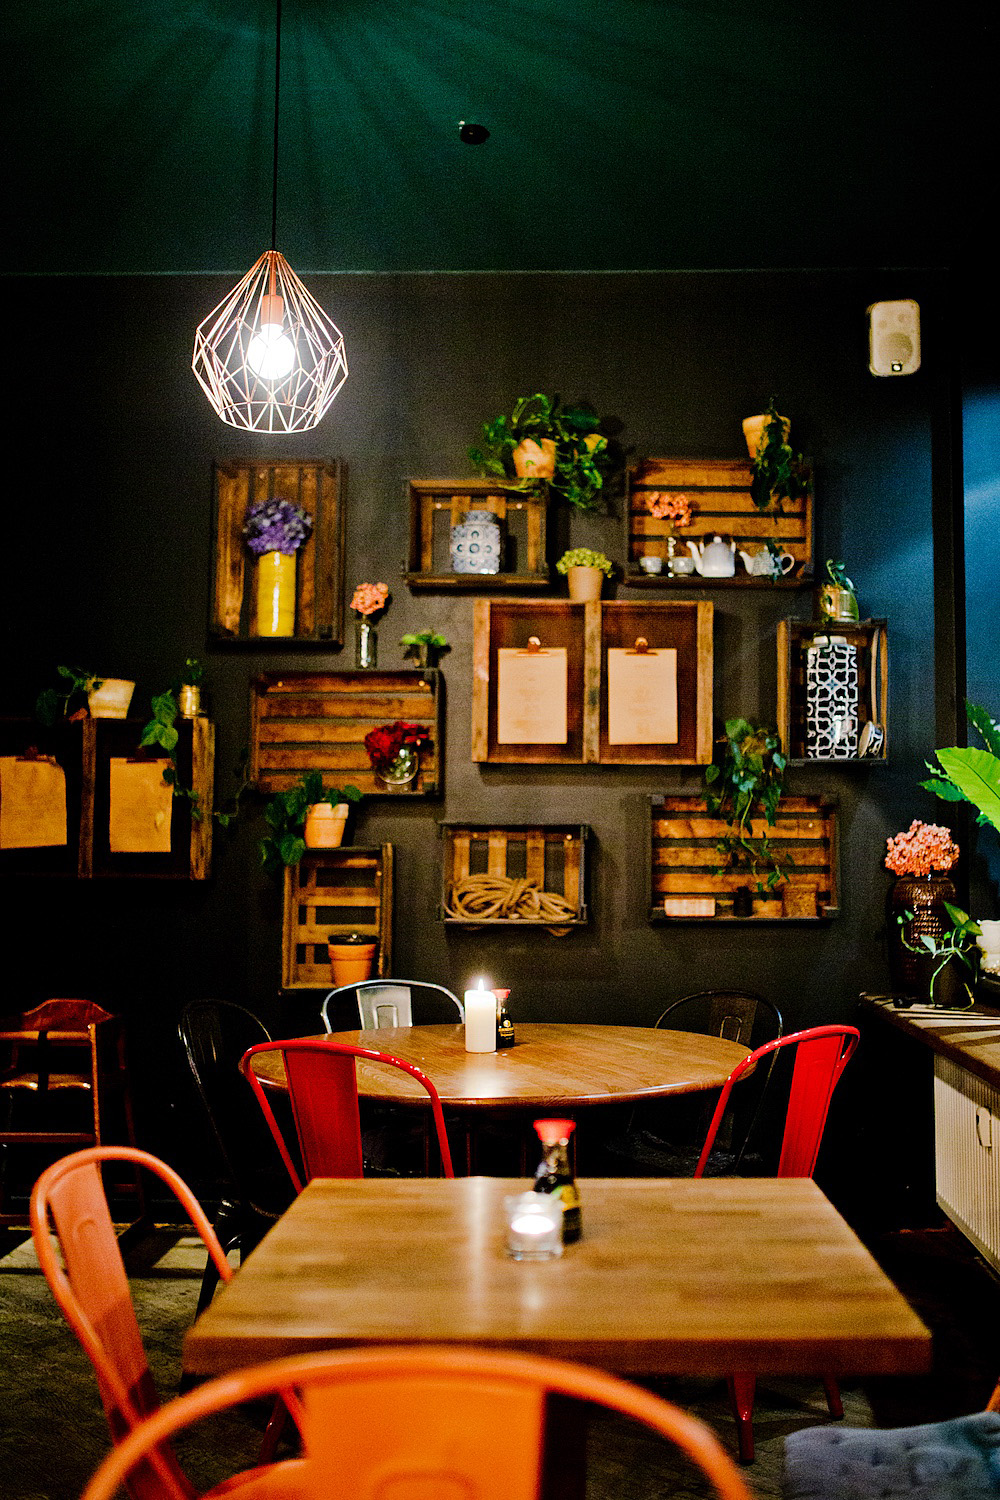 akemi _ asian restaurant berlin _ vietnamese restaurant berlin stylish